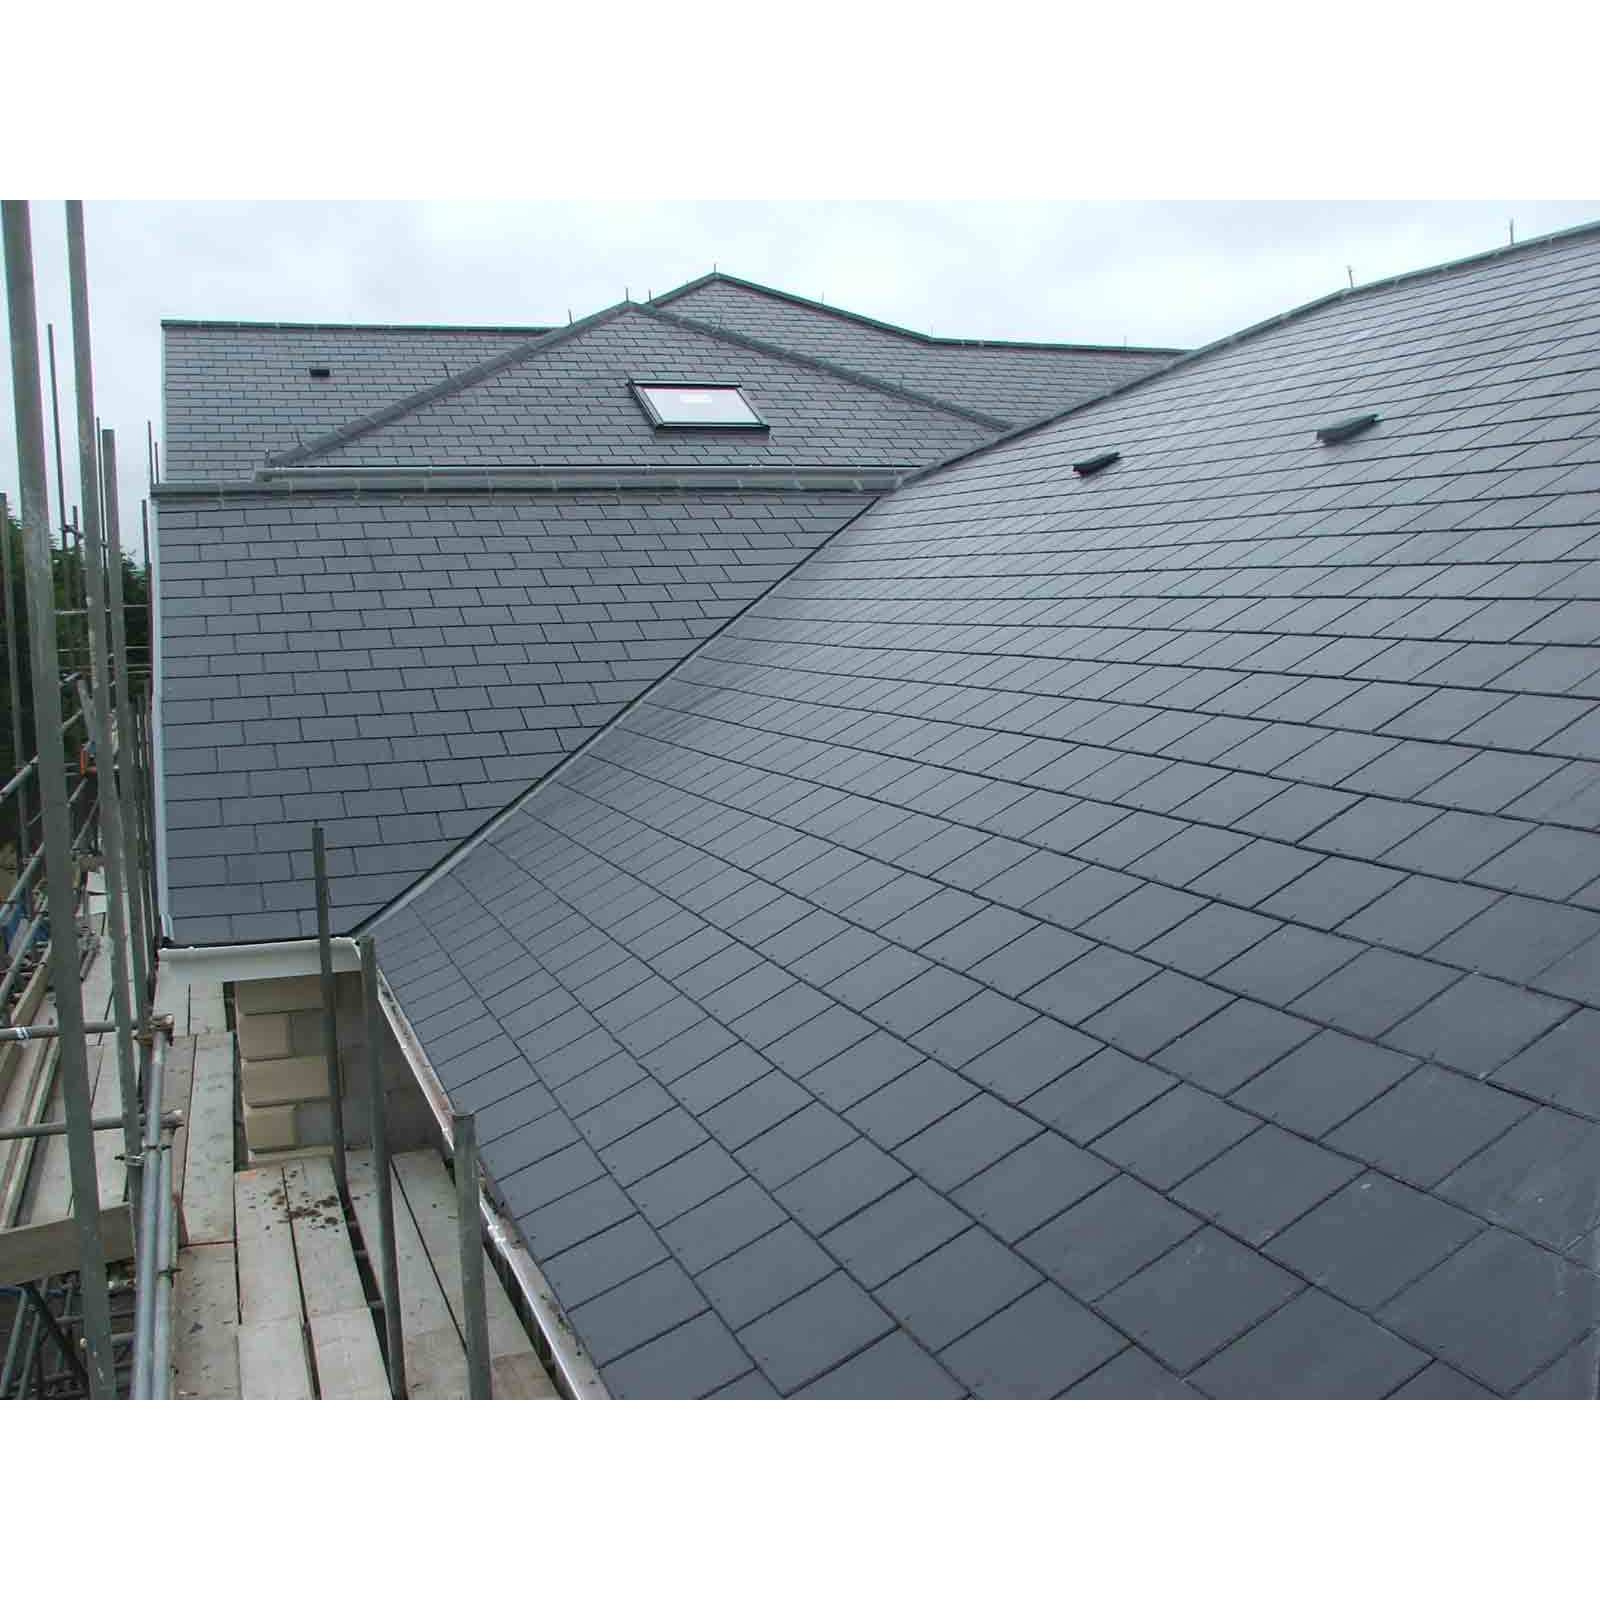 All Action Roofing - Leighton Buzzard, Buckinghamshire  - 07449 524203 | ShowMeLocal.com